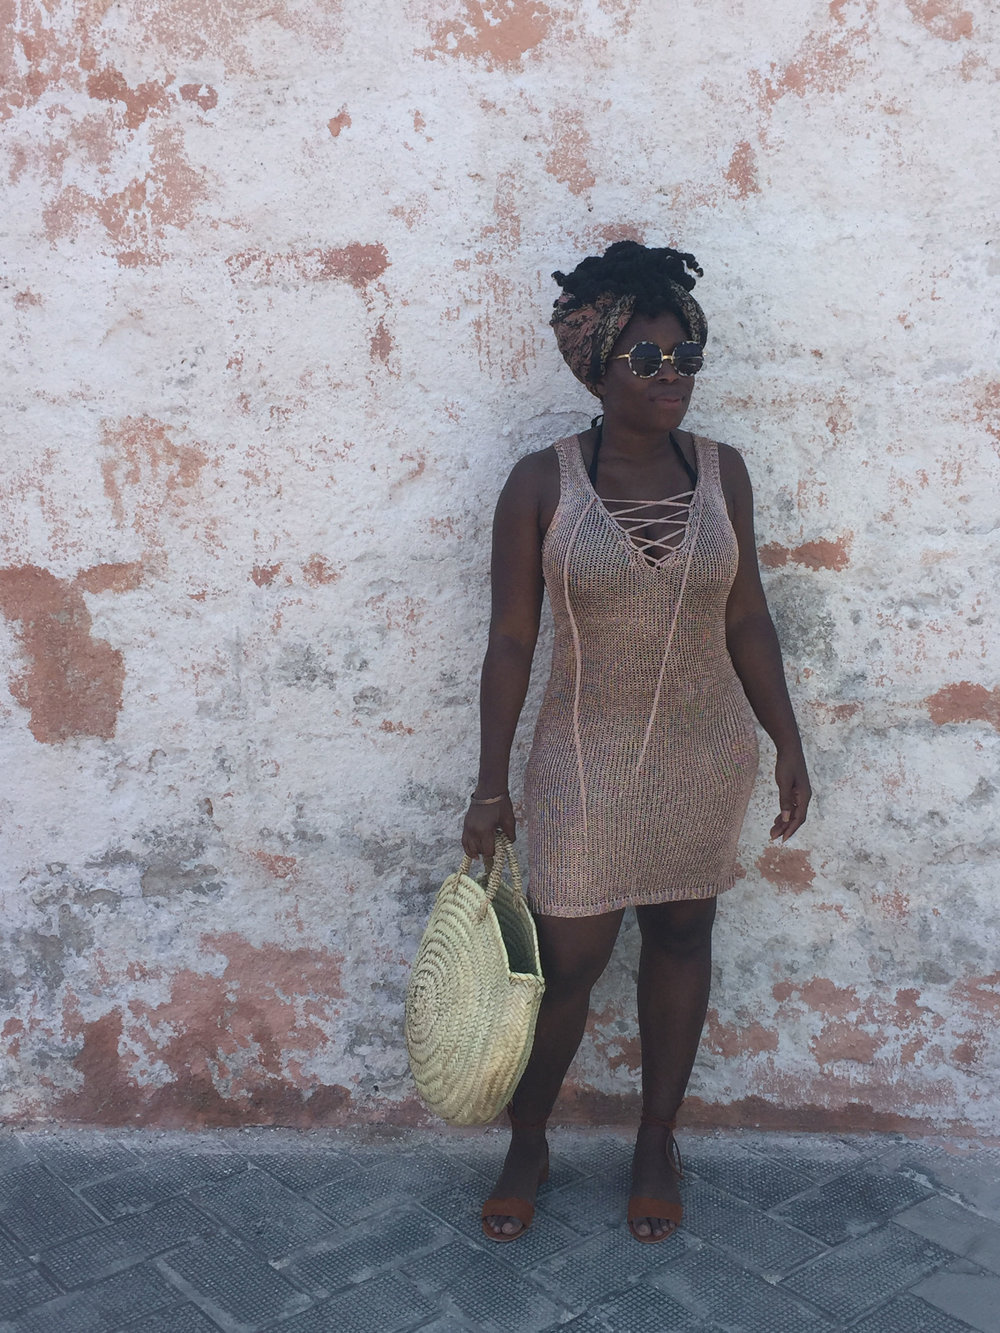 katherine in polignano a mare in anaise ankle sandle.jpg